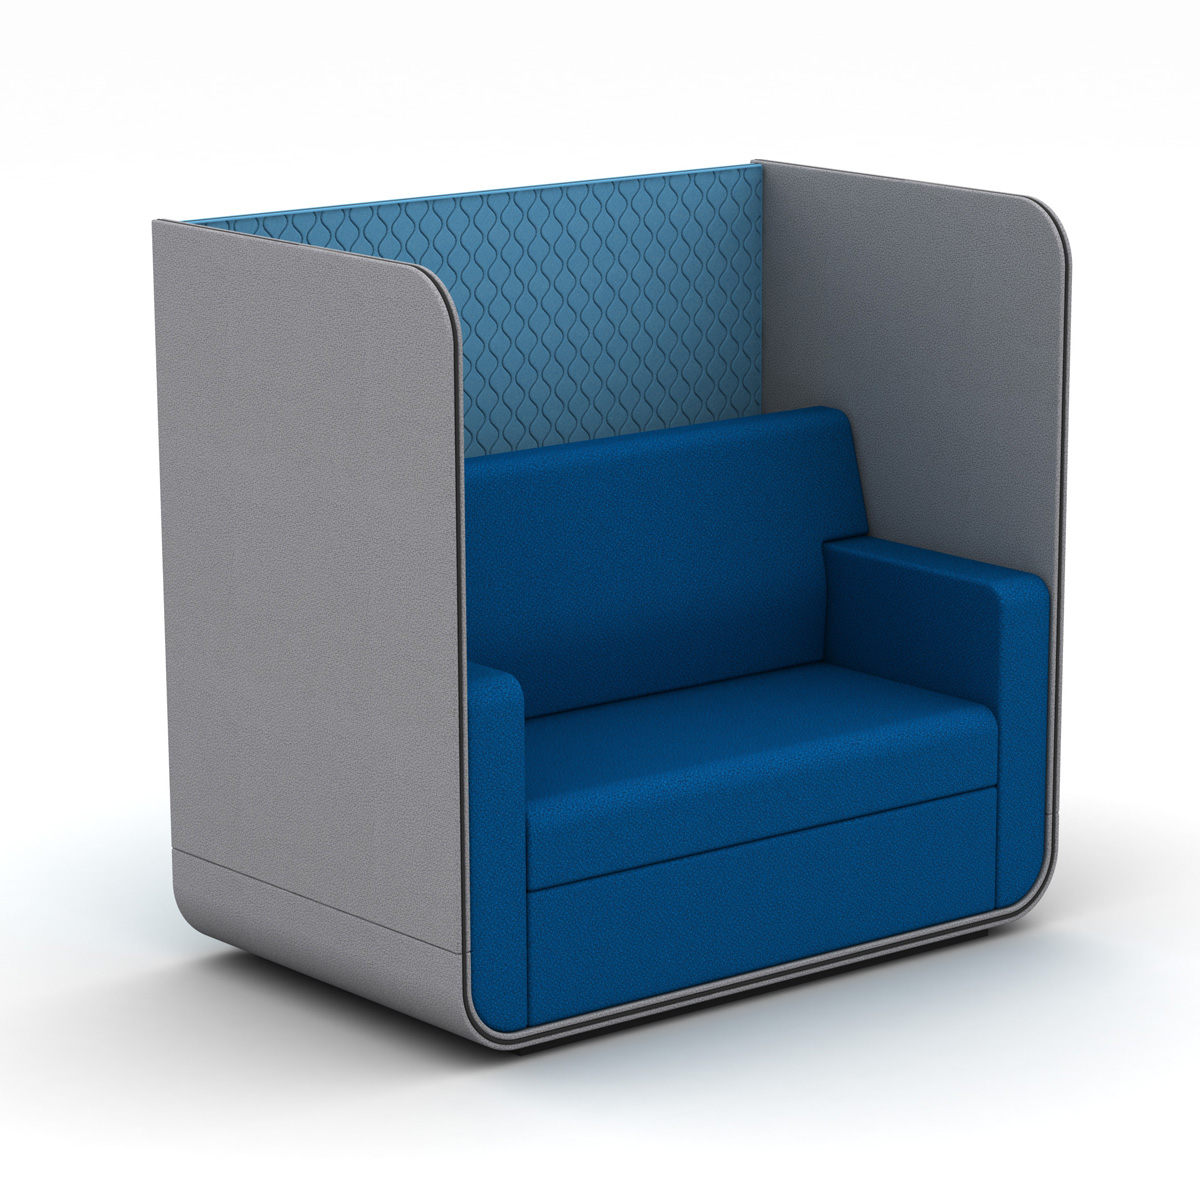 Snug Acoustic Booth Agile Working Pod Rapid Office Furniture